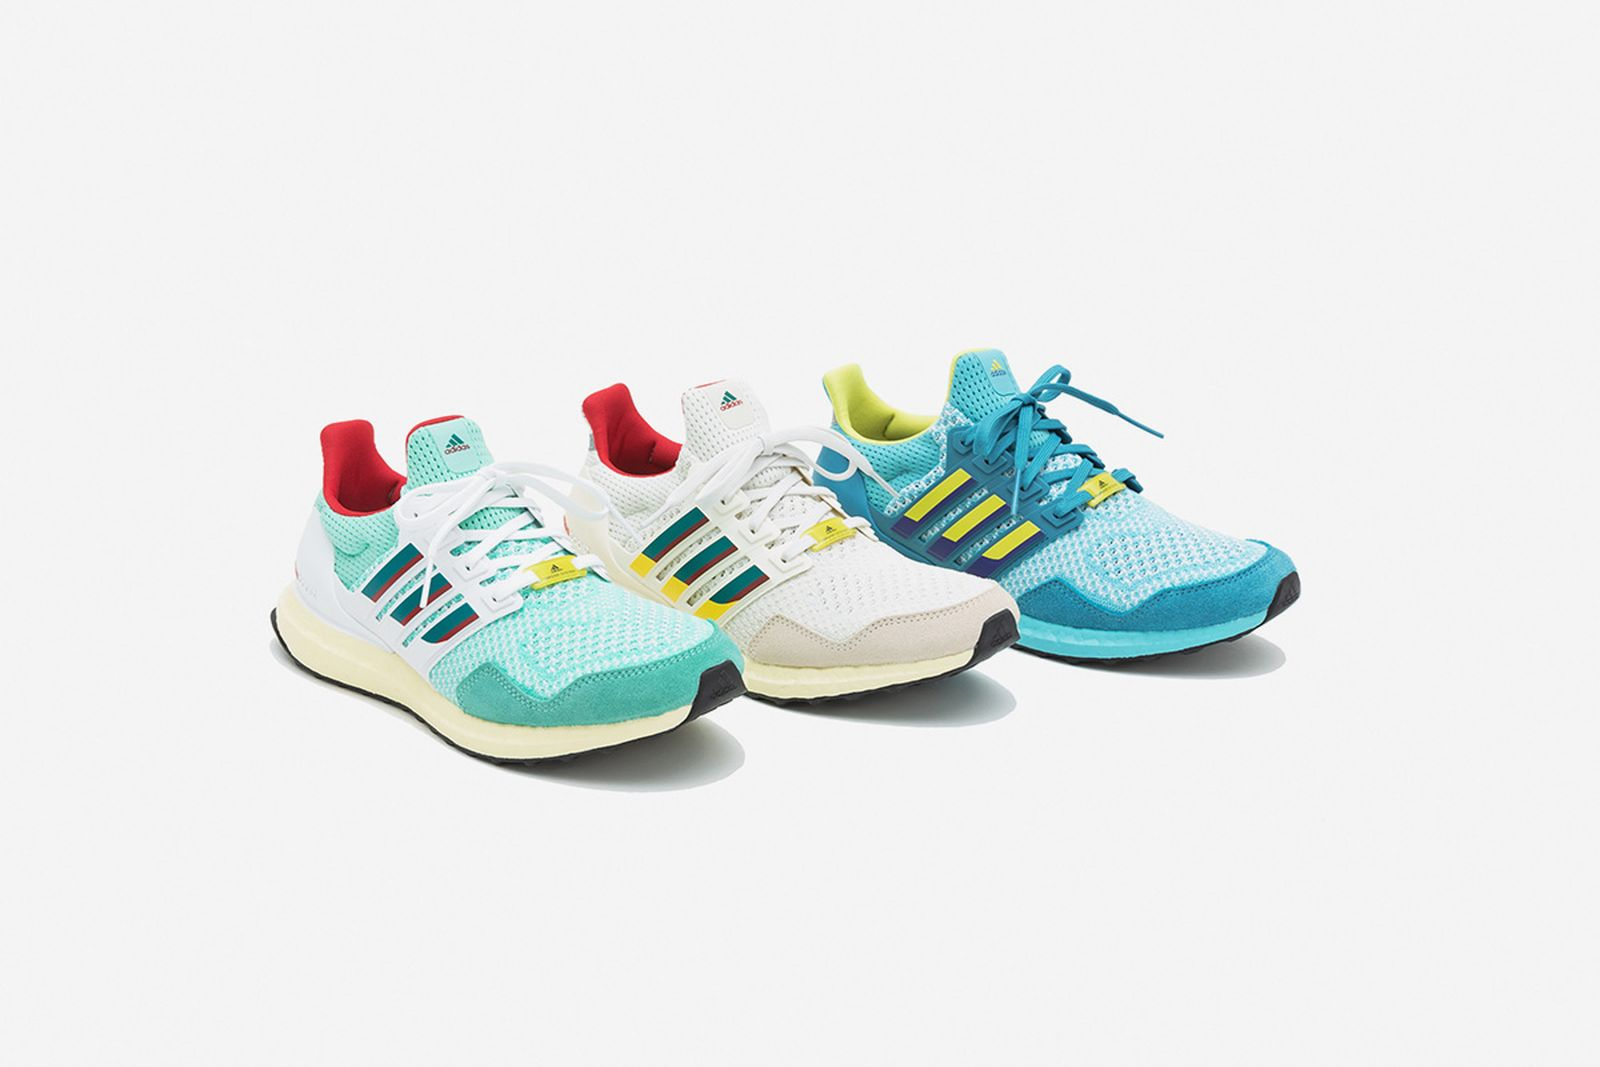 adidas-ultraboost-1-0-dna-zx-collection-release-date-price-00